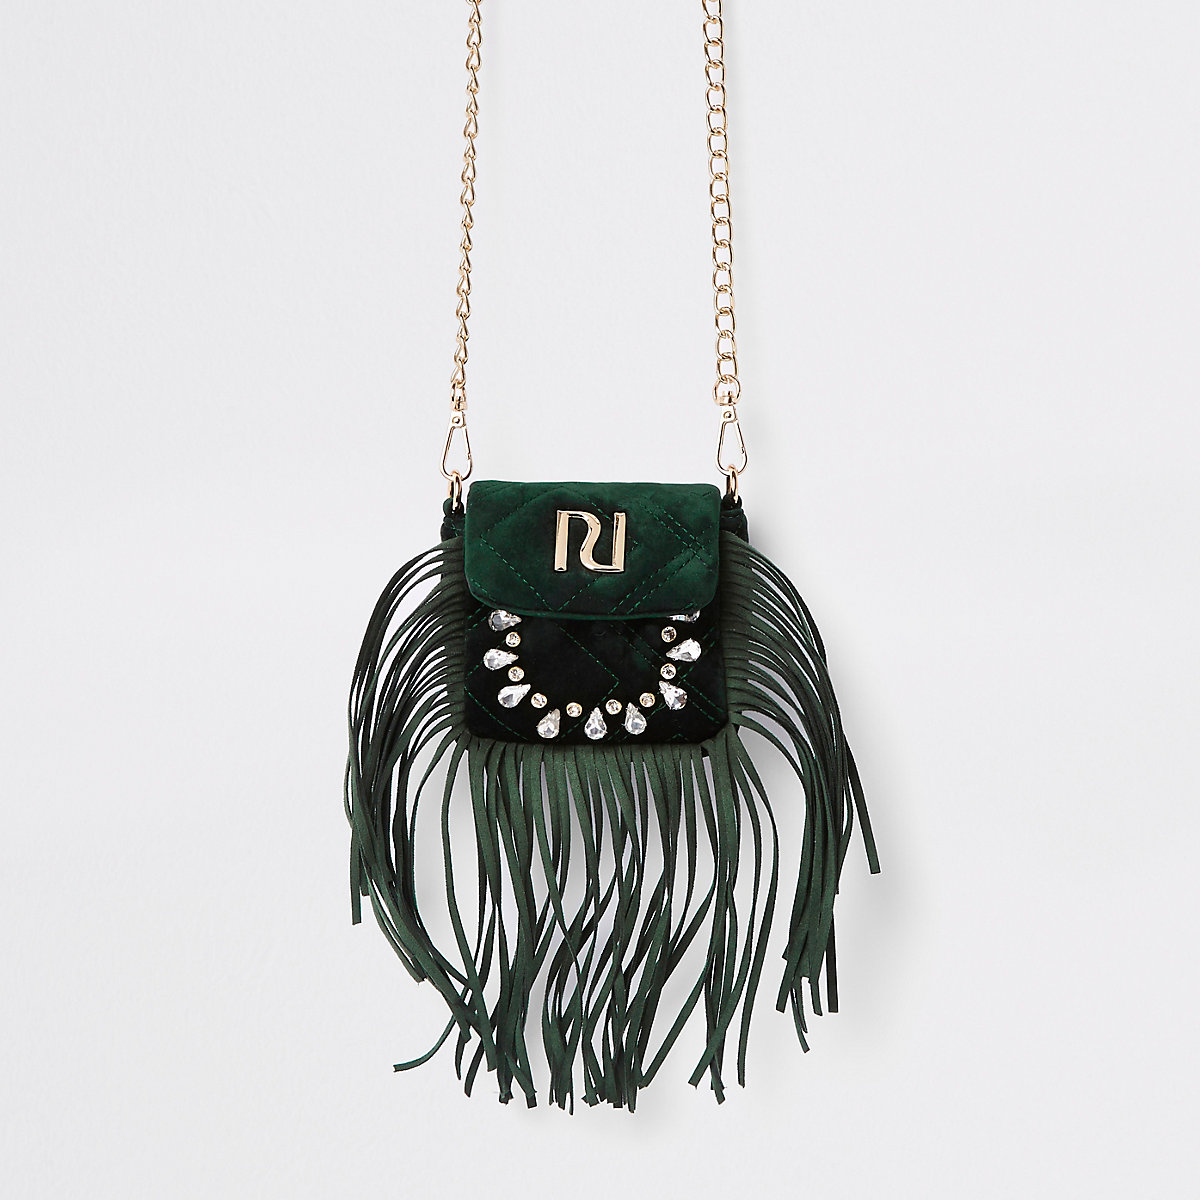 1d523a4d43f6 RI 30 green fringe cross body bag - Cross Body Bags - Bags   Purses - women